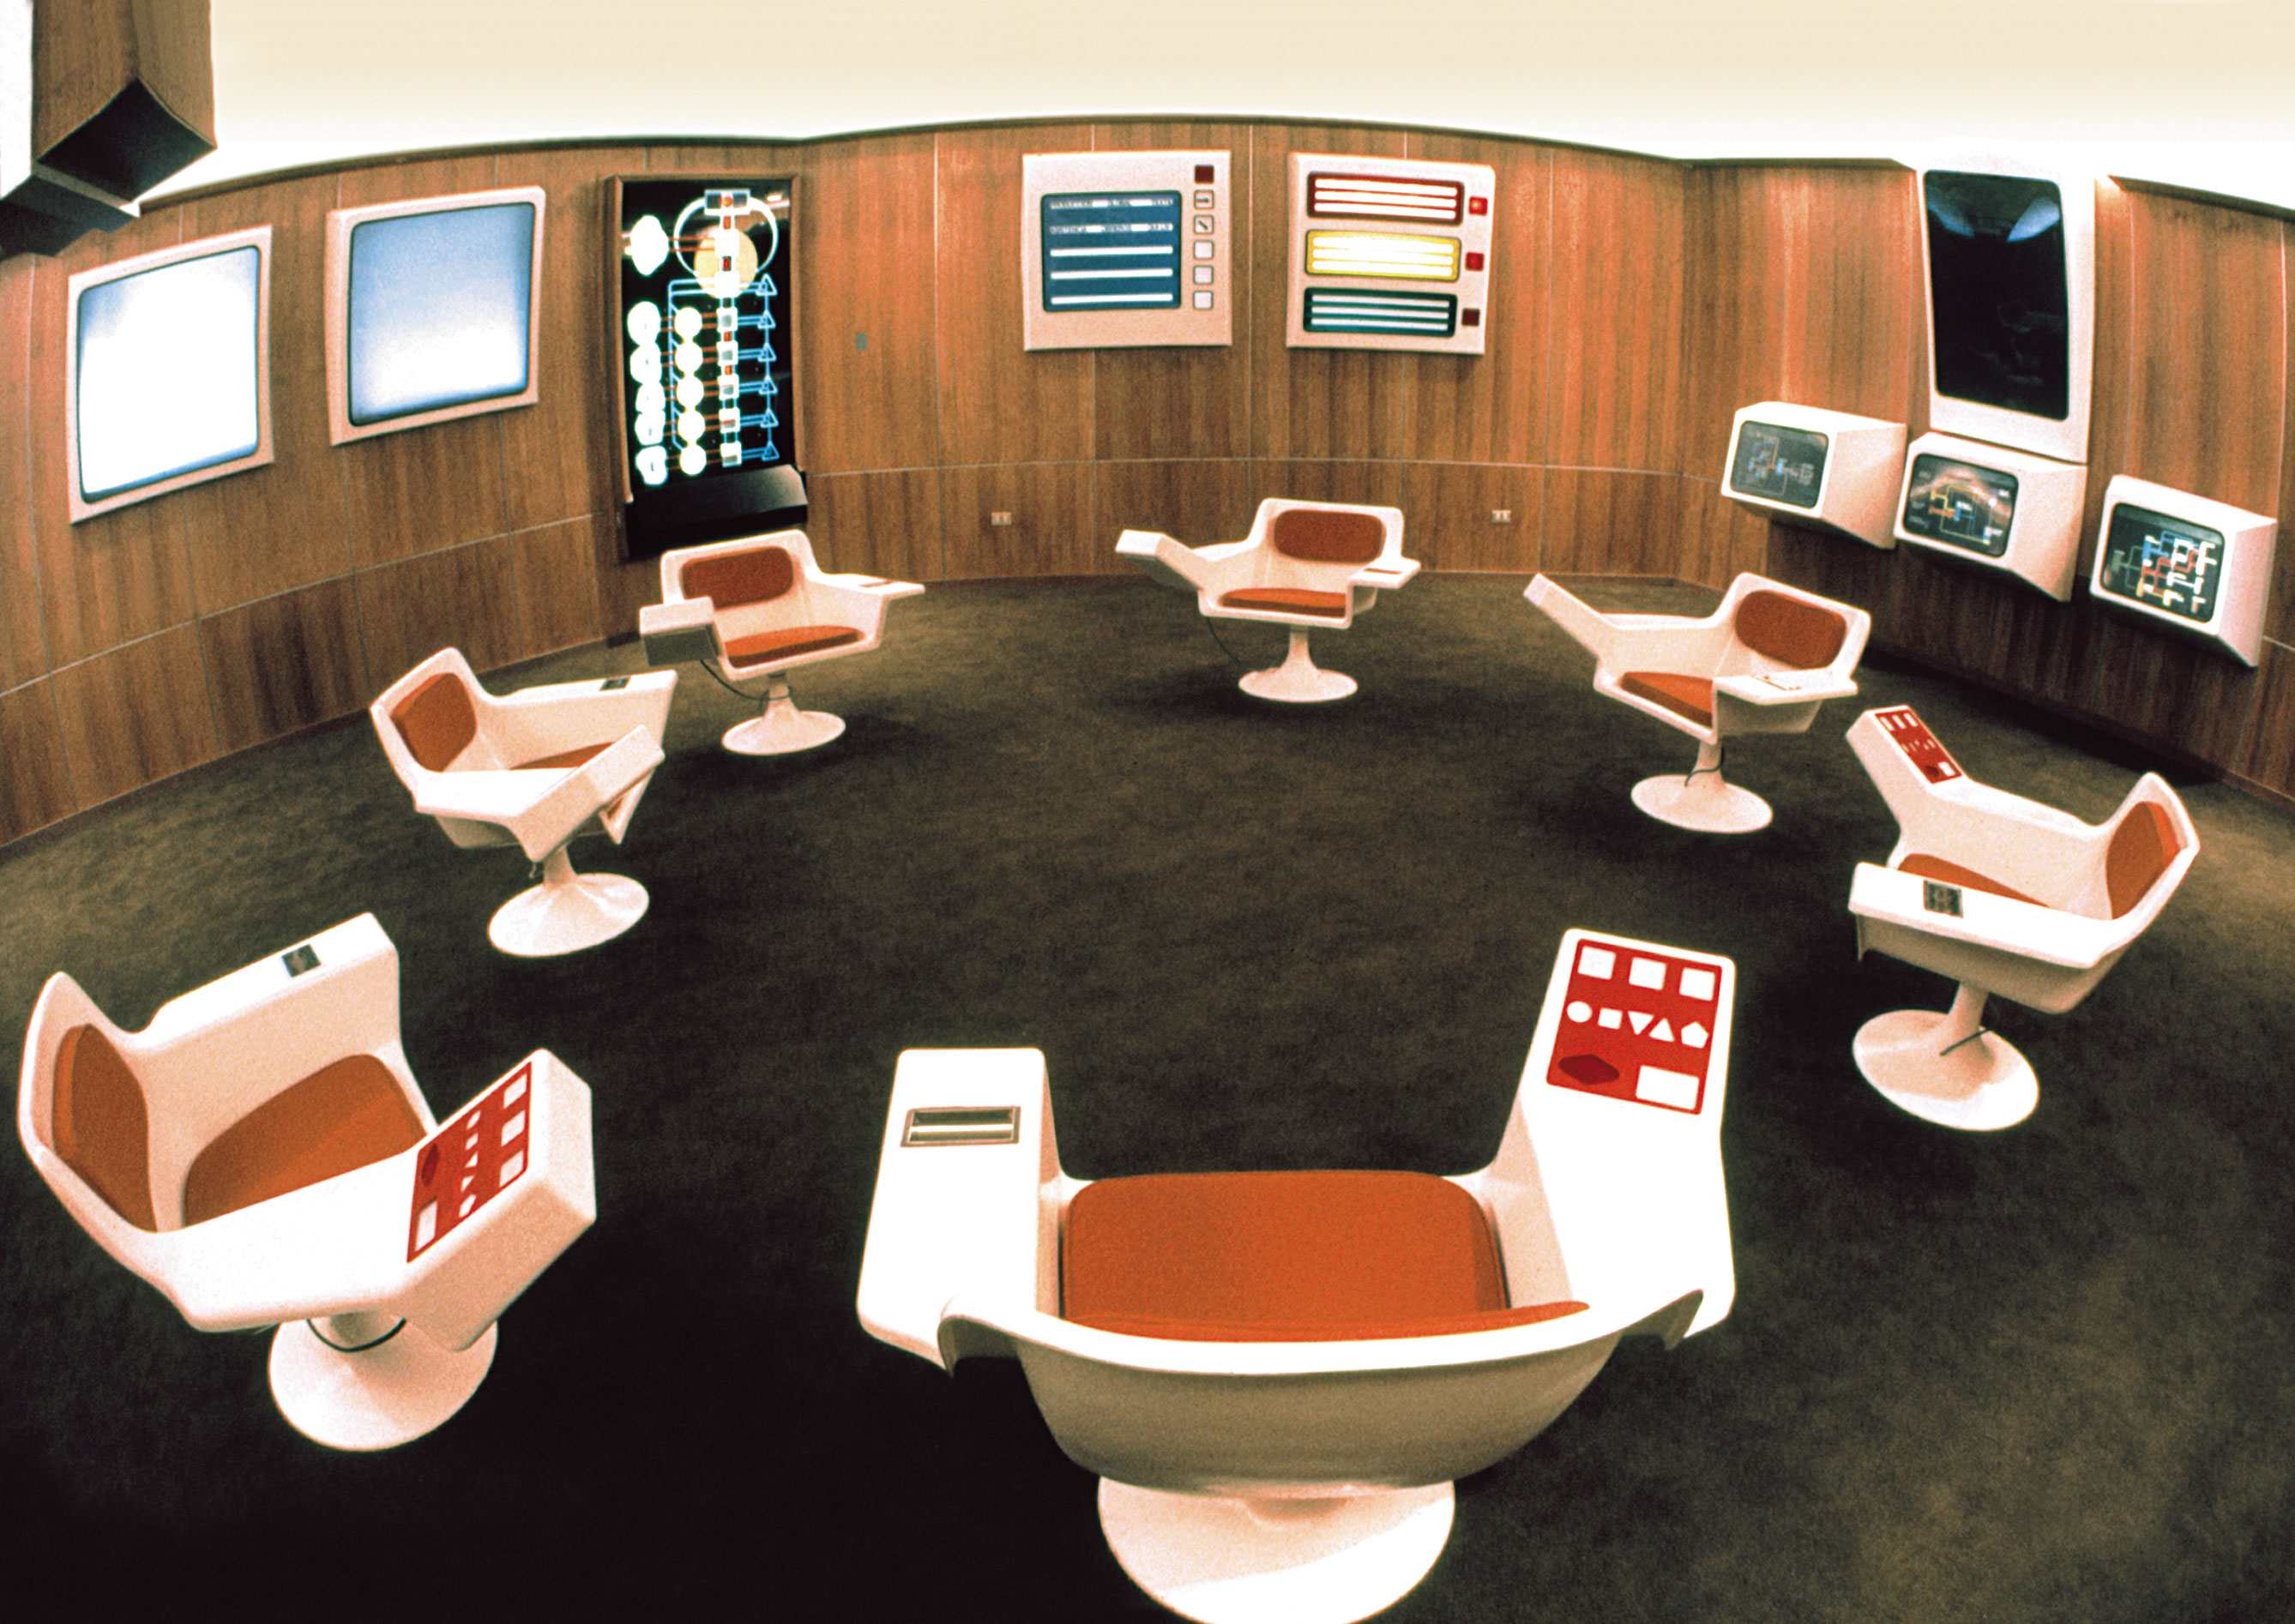 Chile: The Cybersyn Operations Room – historic picture. © Gui Bonsiepe